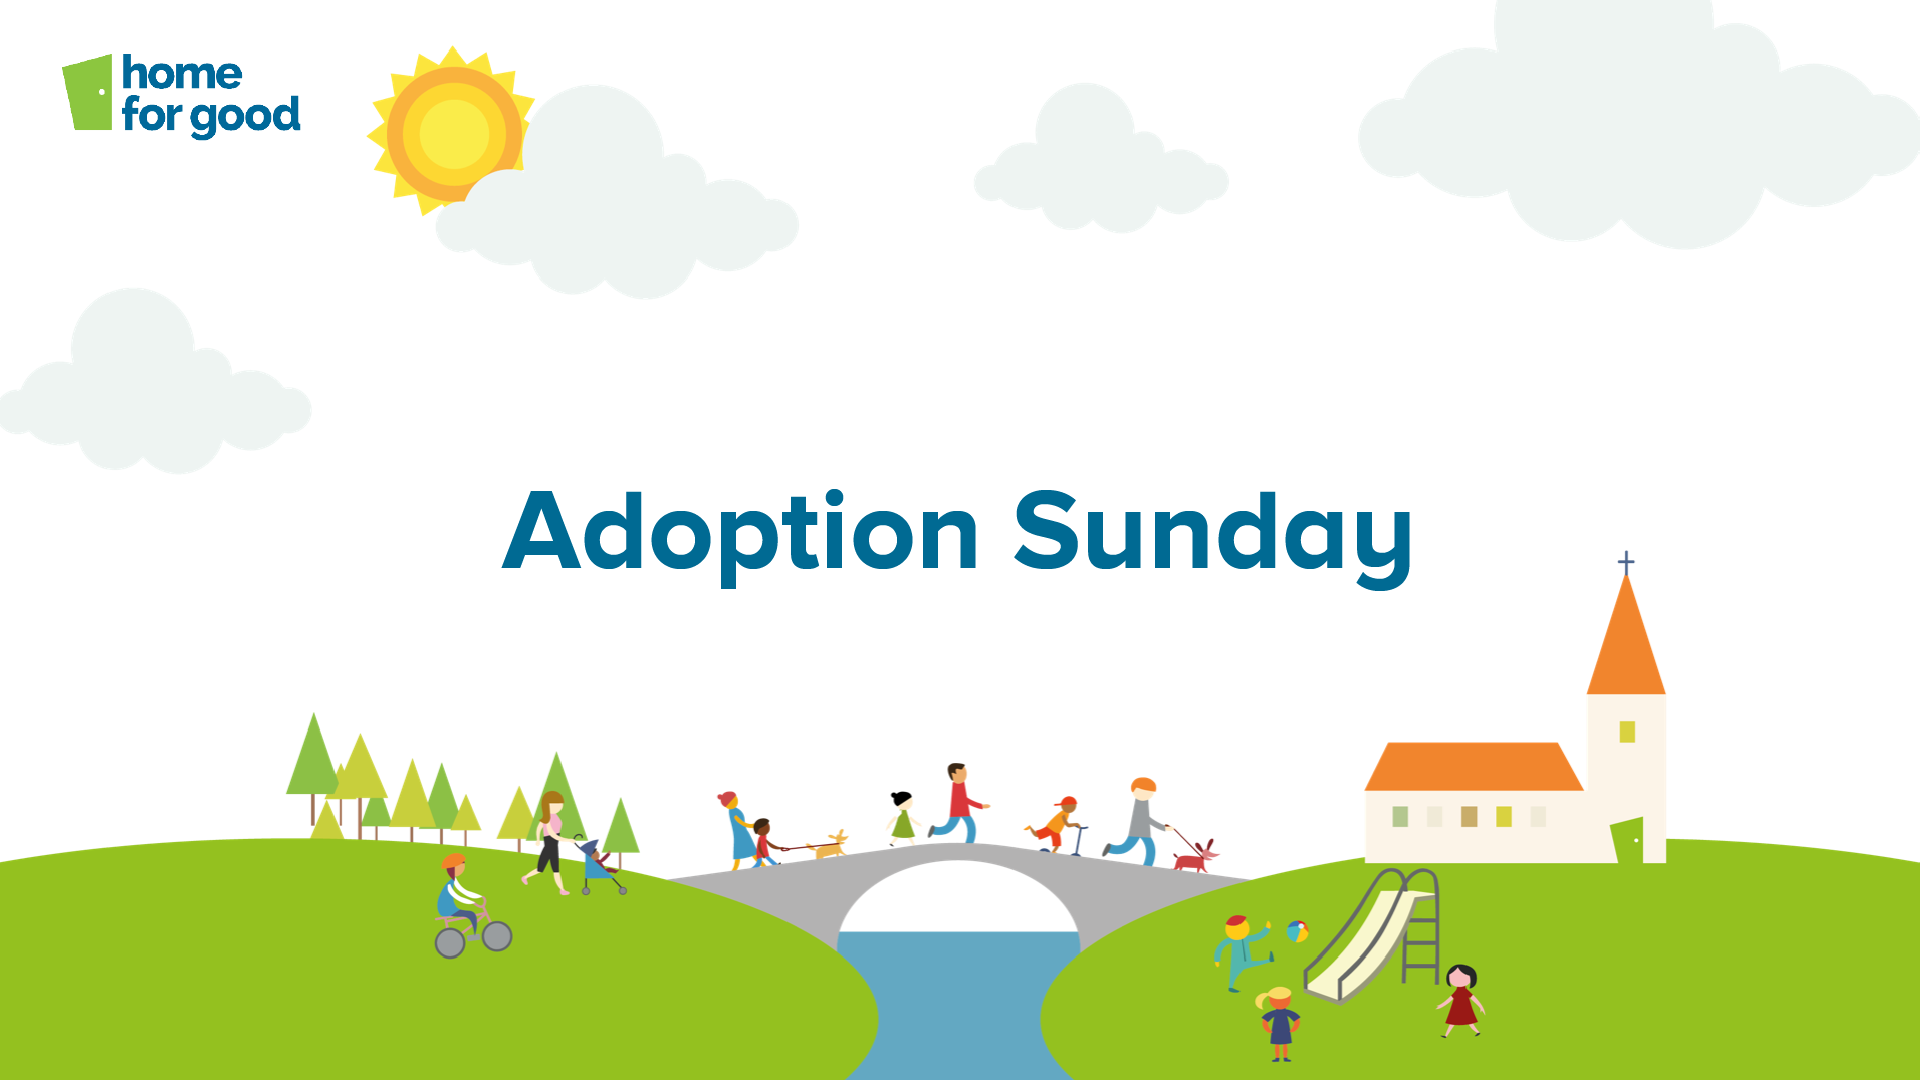 Adoption Sunday